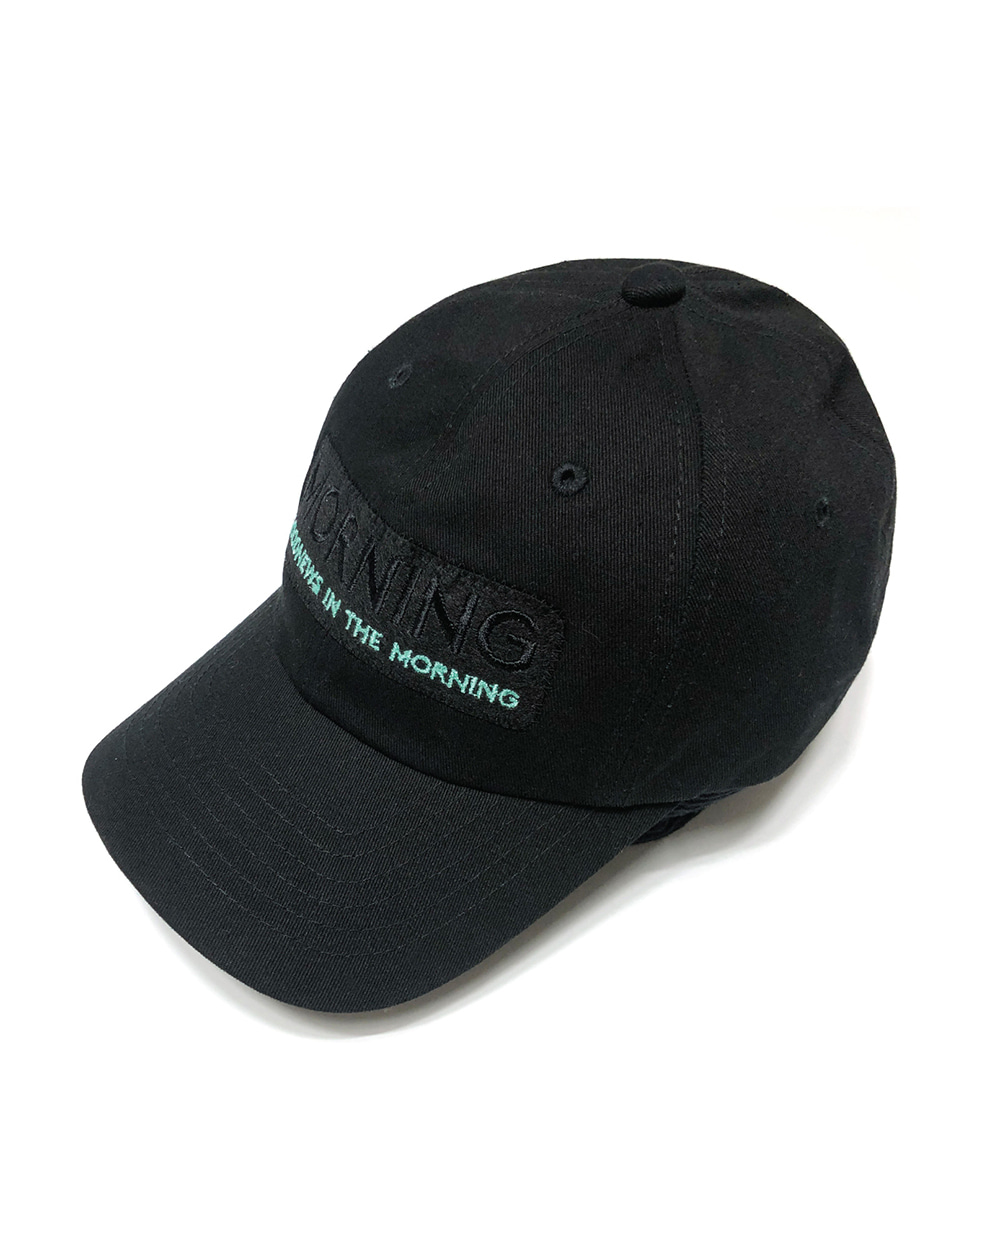 GOOD NEWS  MORNING ZIPPER CAP (Black)